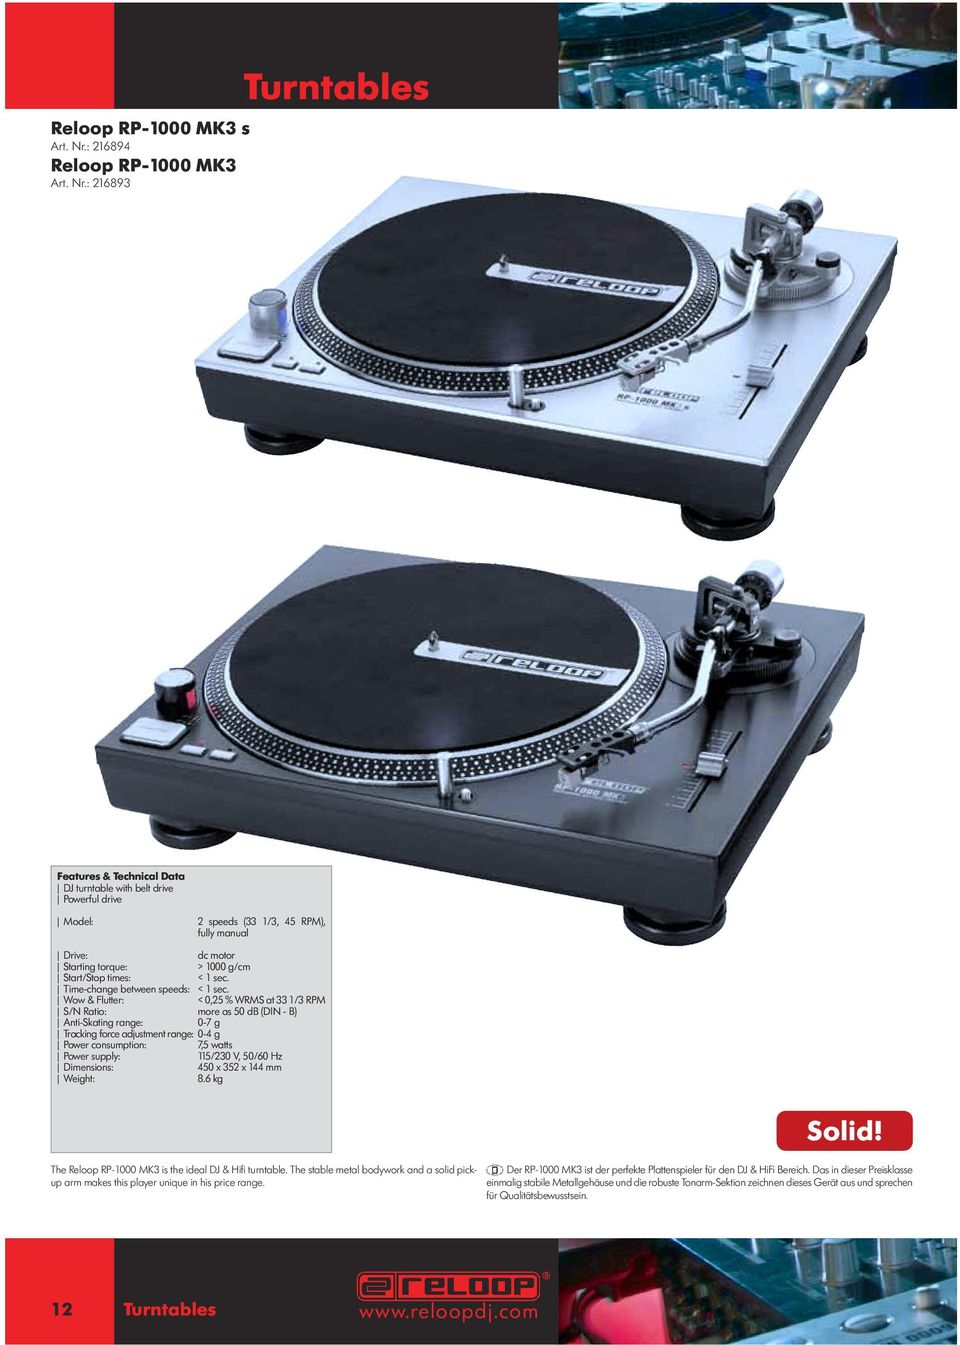 : 216893 Turntables DJ turntable with belt drive Powerful drive Model: 2 speeds (33 1/3, 45 RPM), fully manual Drive: dc motor Starting torque: > 1000 g/cm Start/Stop times: < 1 sec.